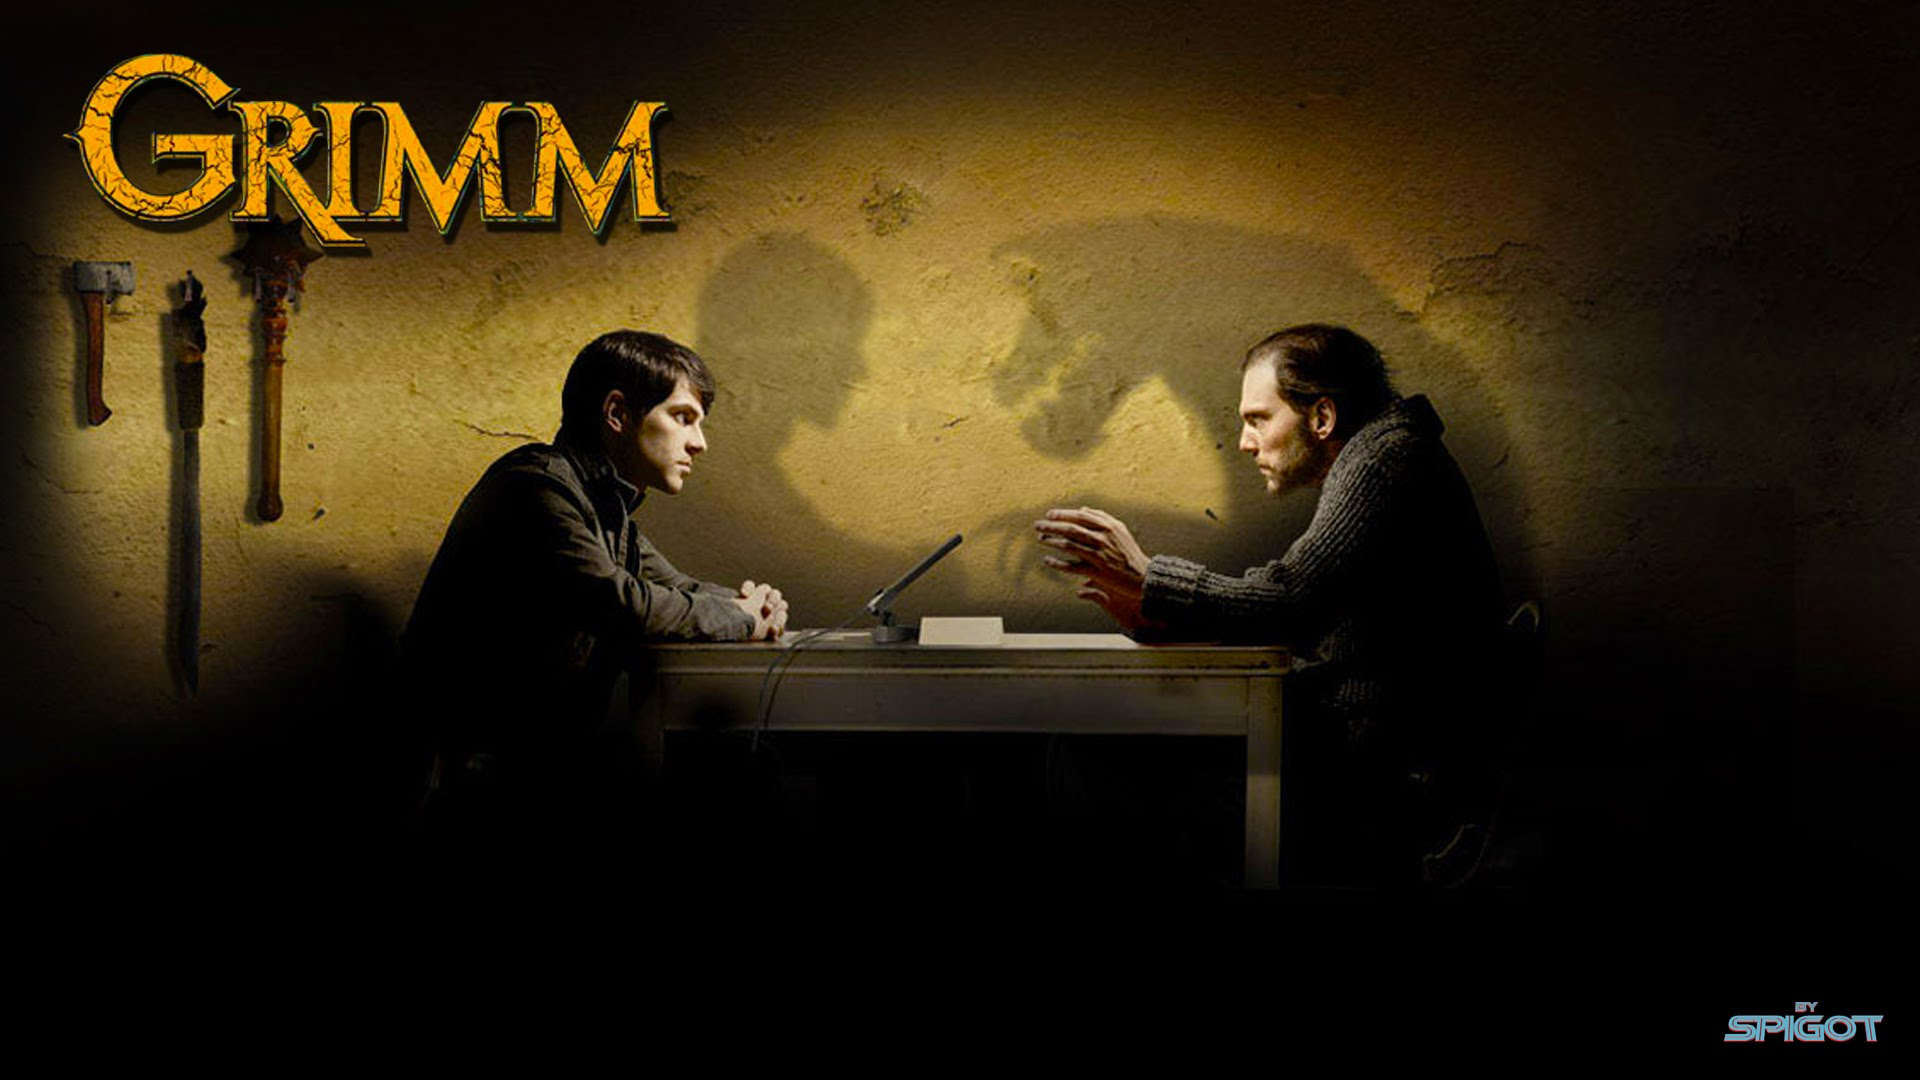 Grimm Season 6 Will Be 13 Episodes Initially